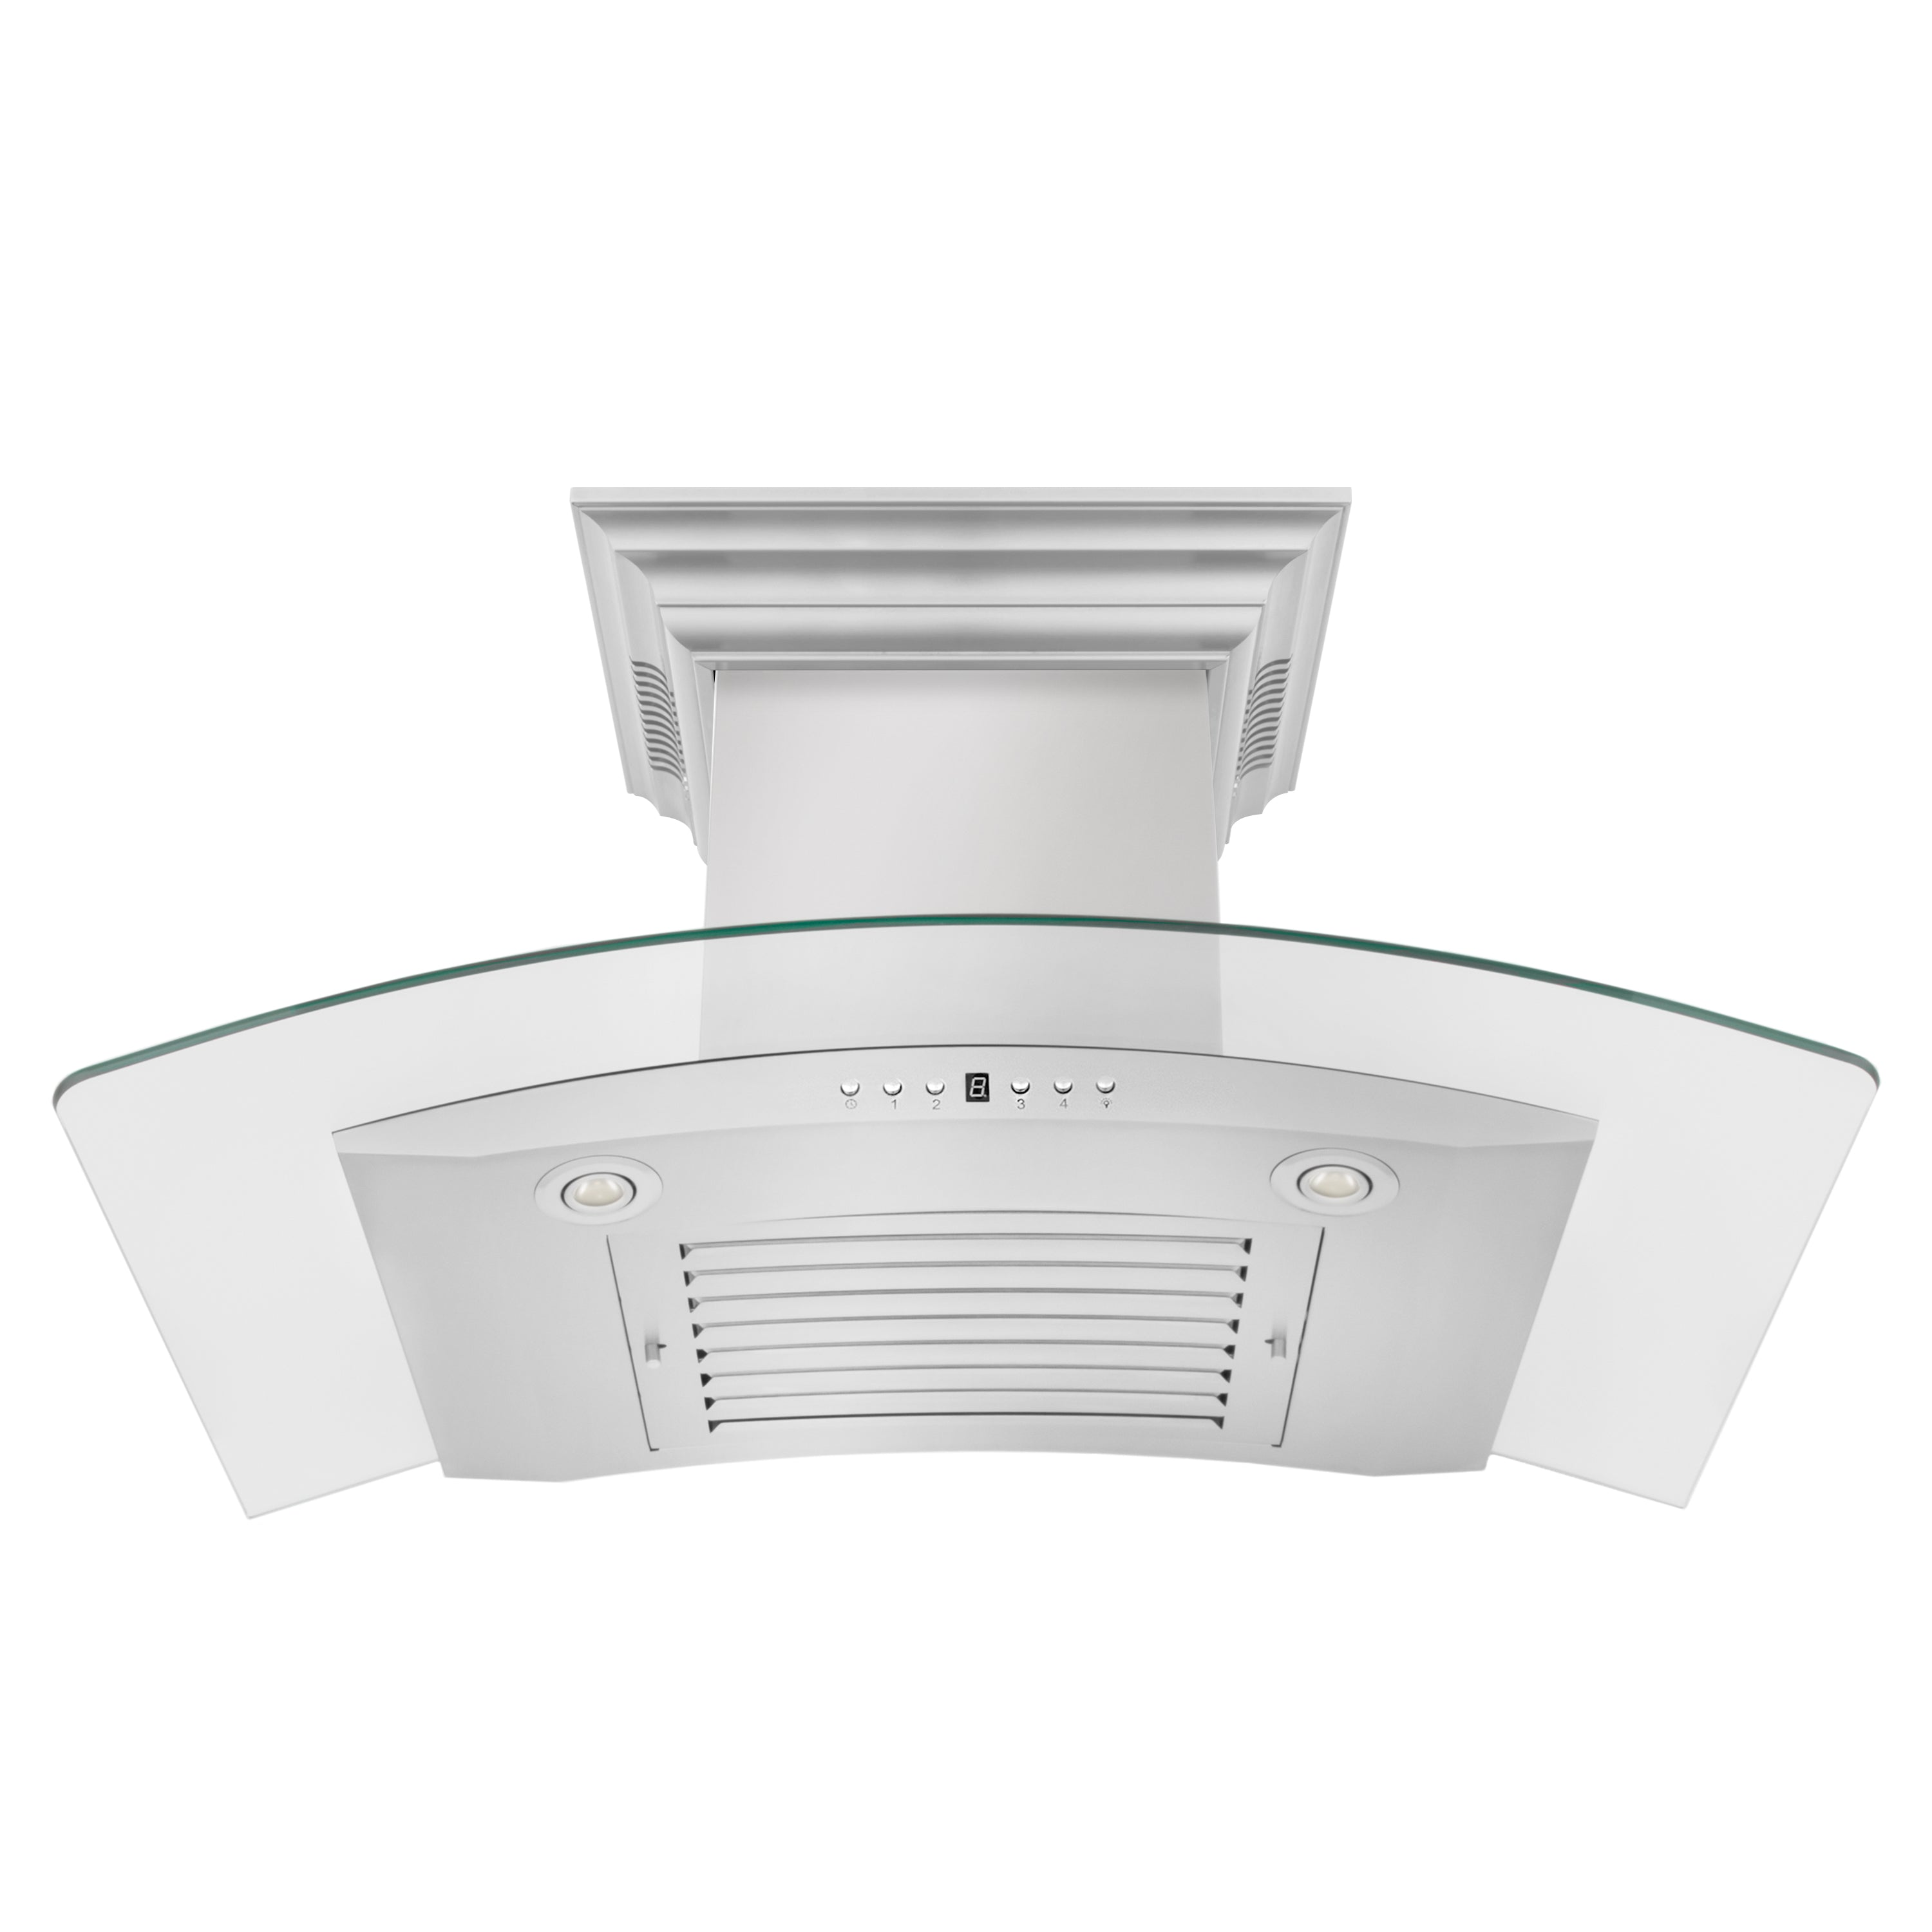 ZLINE Wall Mount Range Hood in Stainless Steel with Built-in CrownSound™ Bluetooth Speakers (KN4CRN-BT)